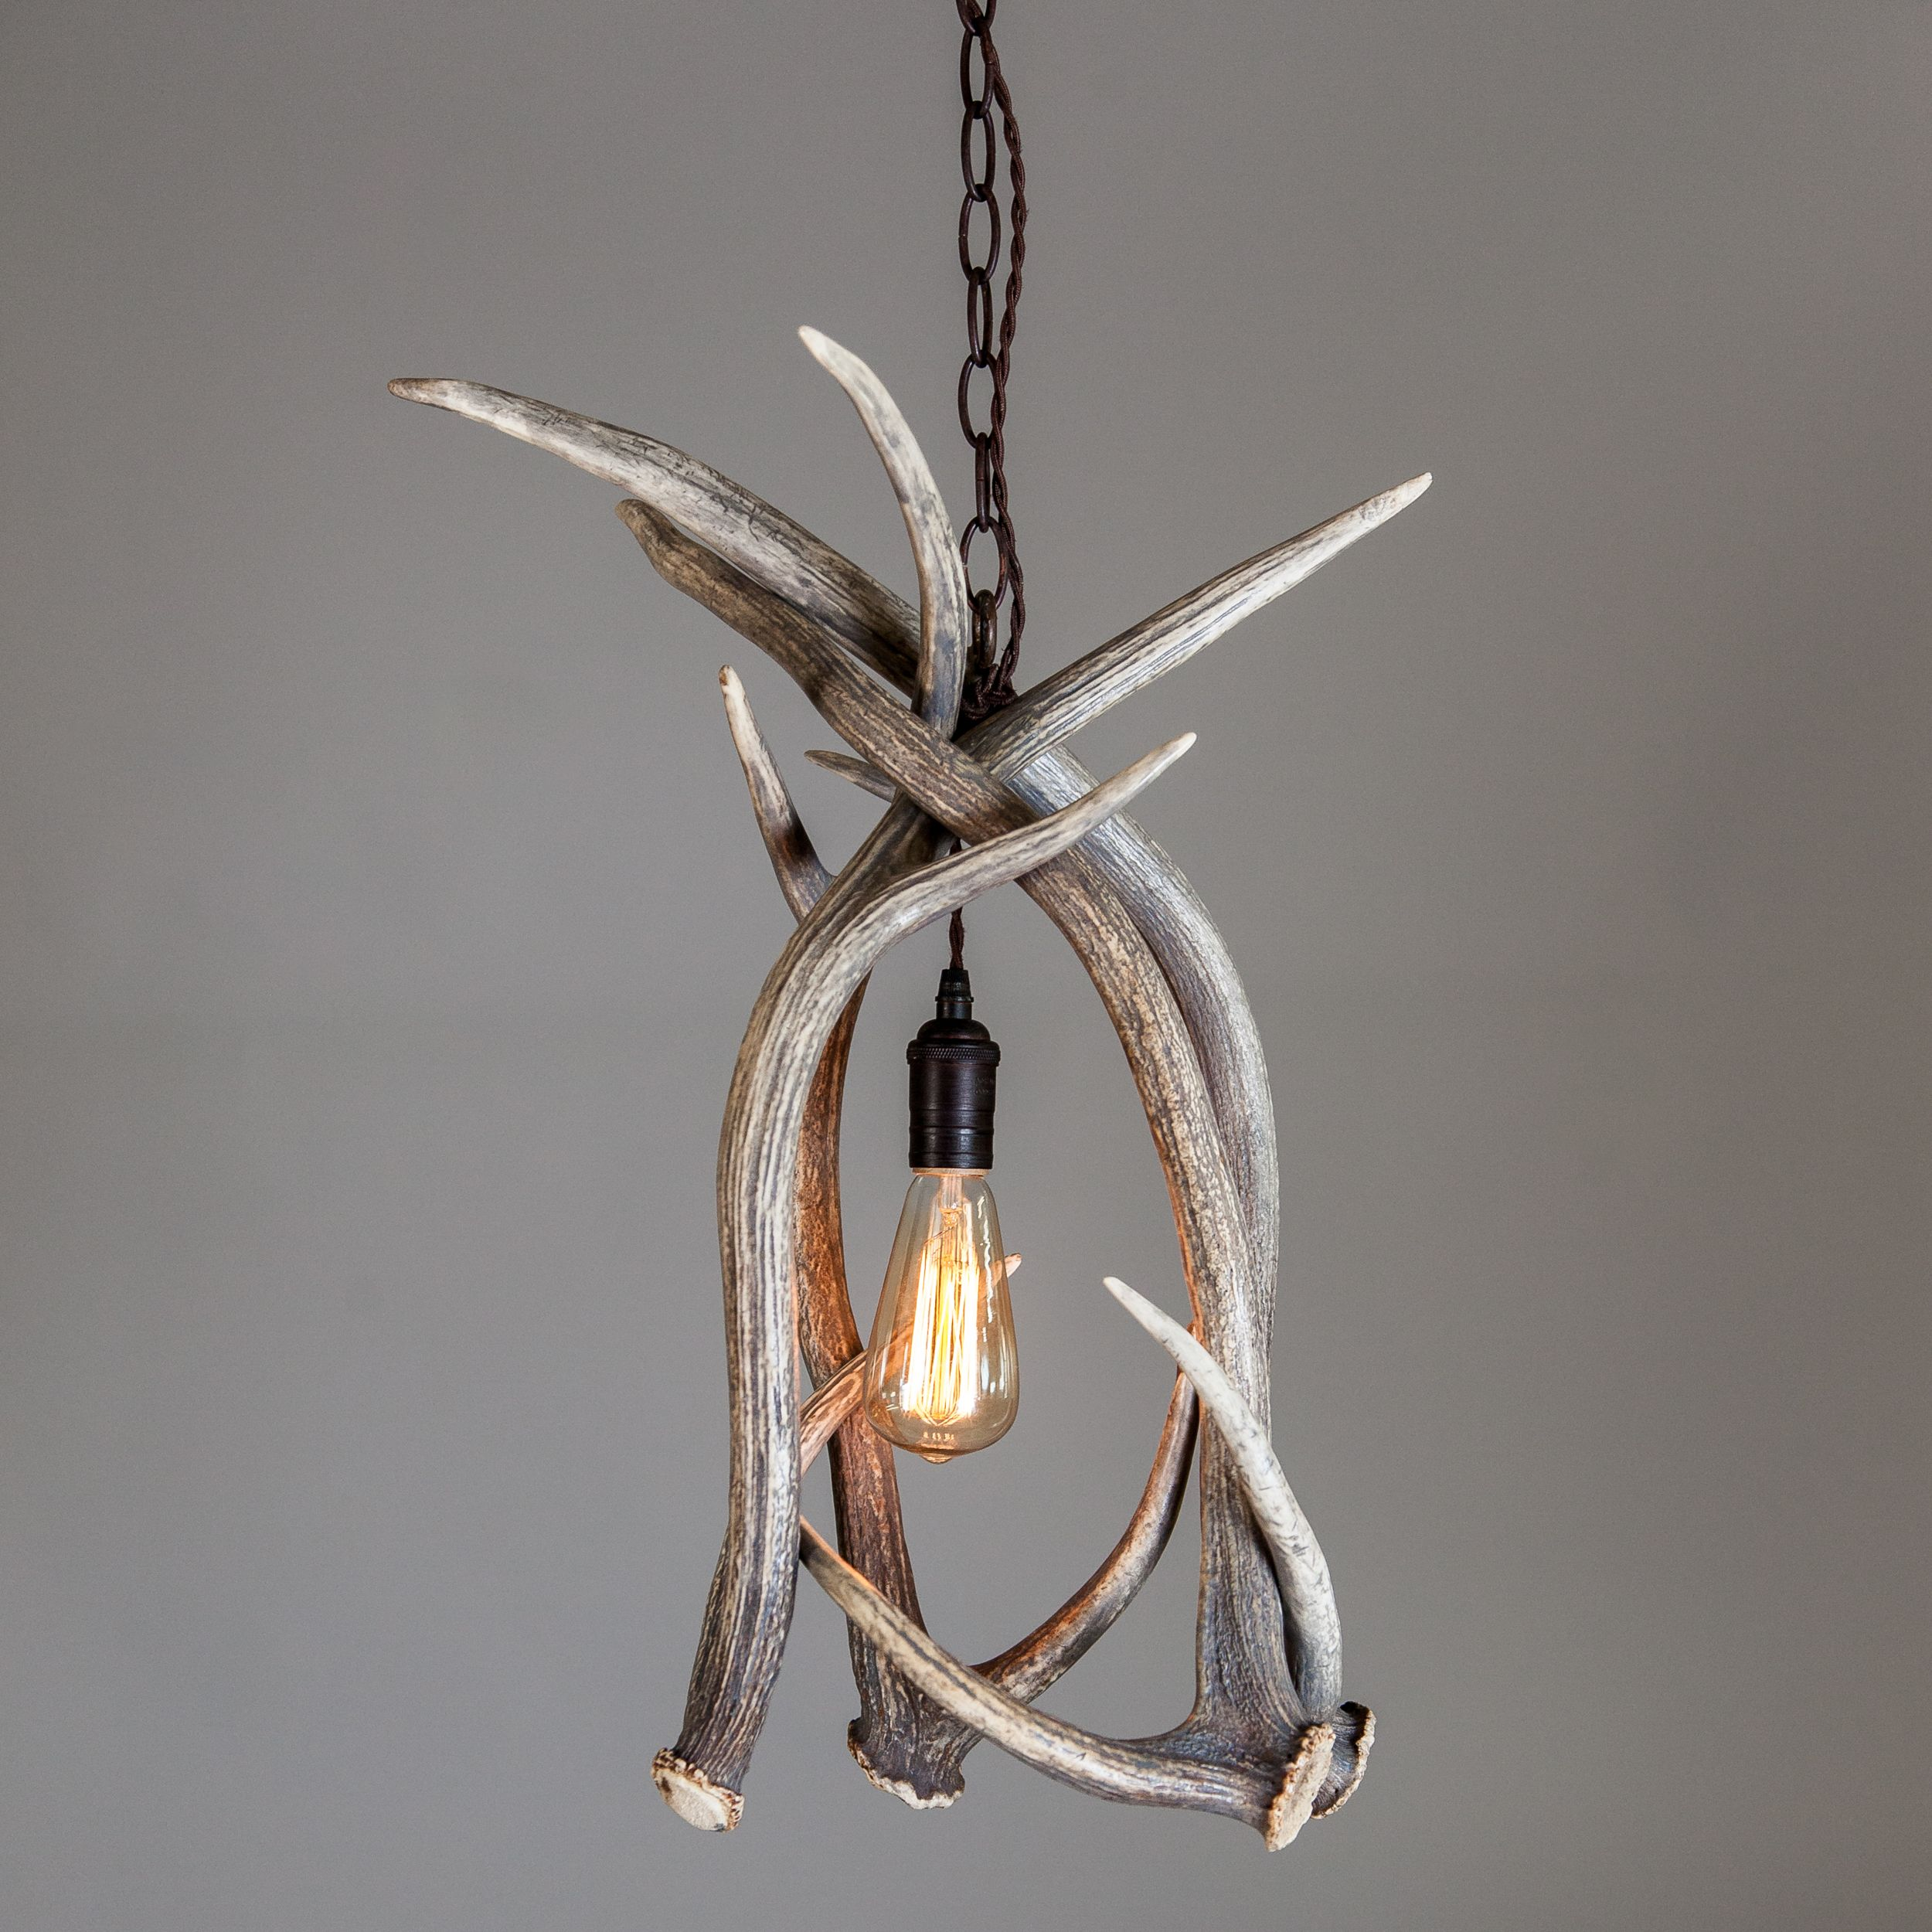 Mountain modern antler chandelier pendant with axis deer shed mountain modern antler chandelier pendant uses axis deer antlers with a soft gray wash rubbed bronze electrical components and an edison style light bulb arubaitofo Images